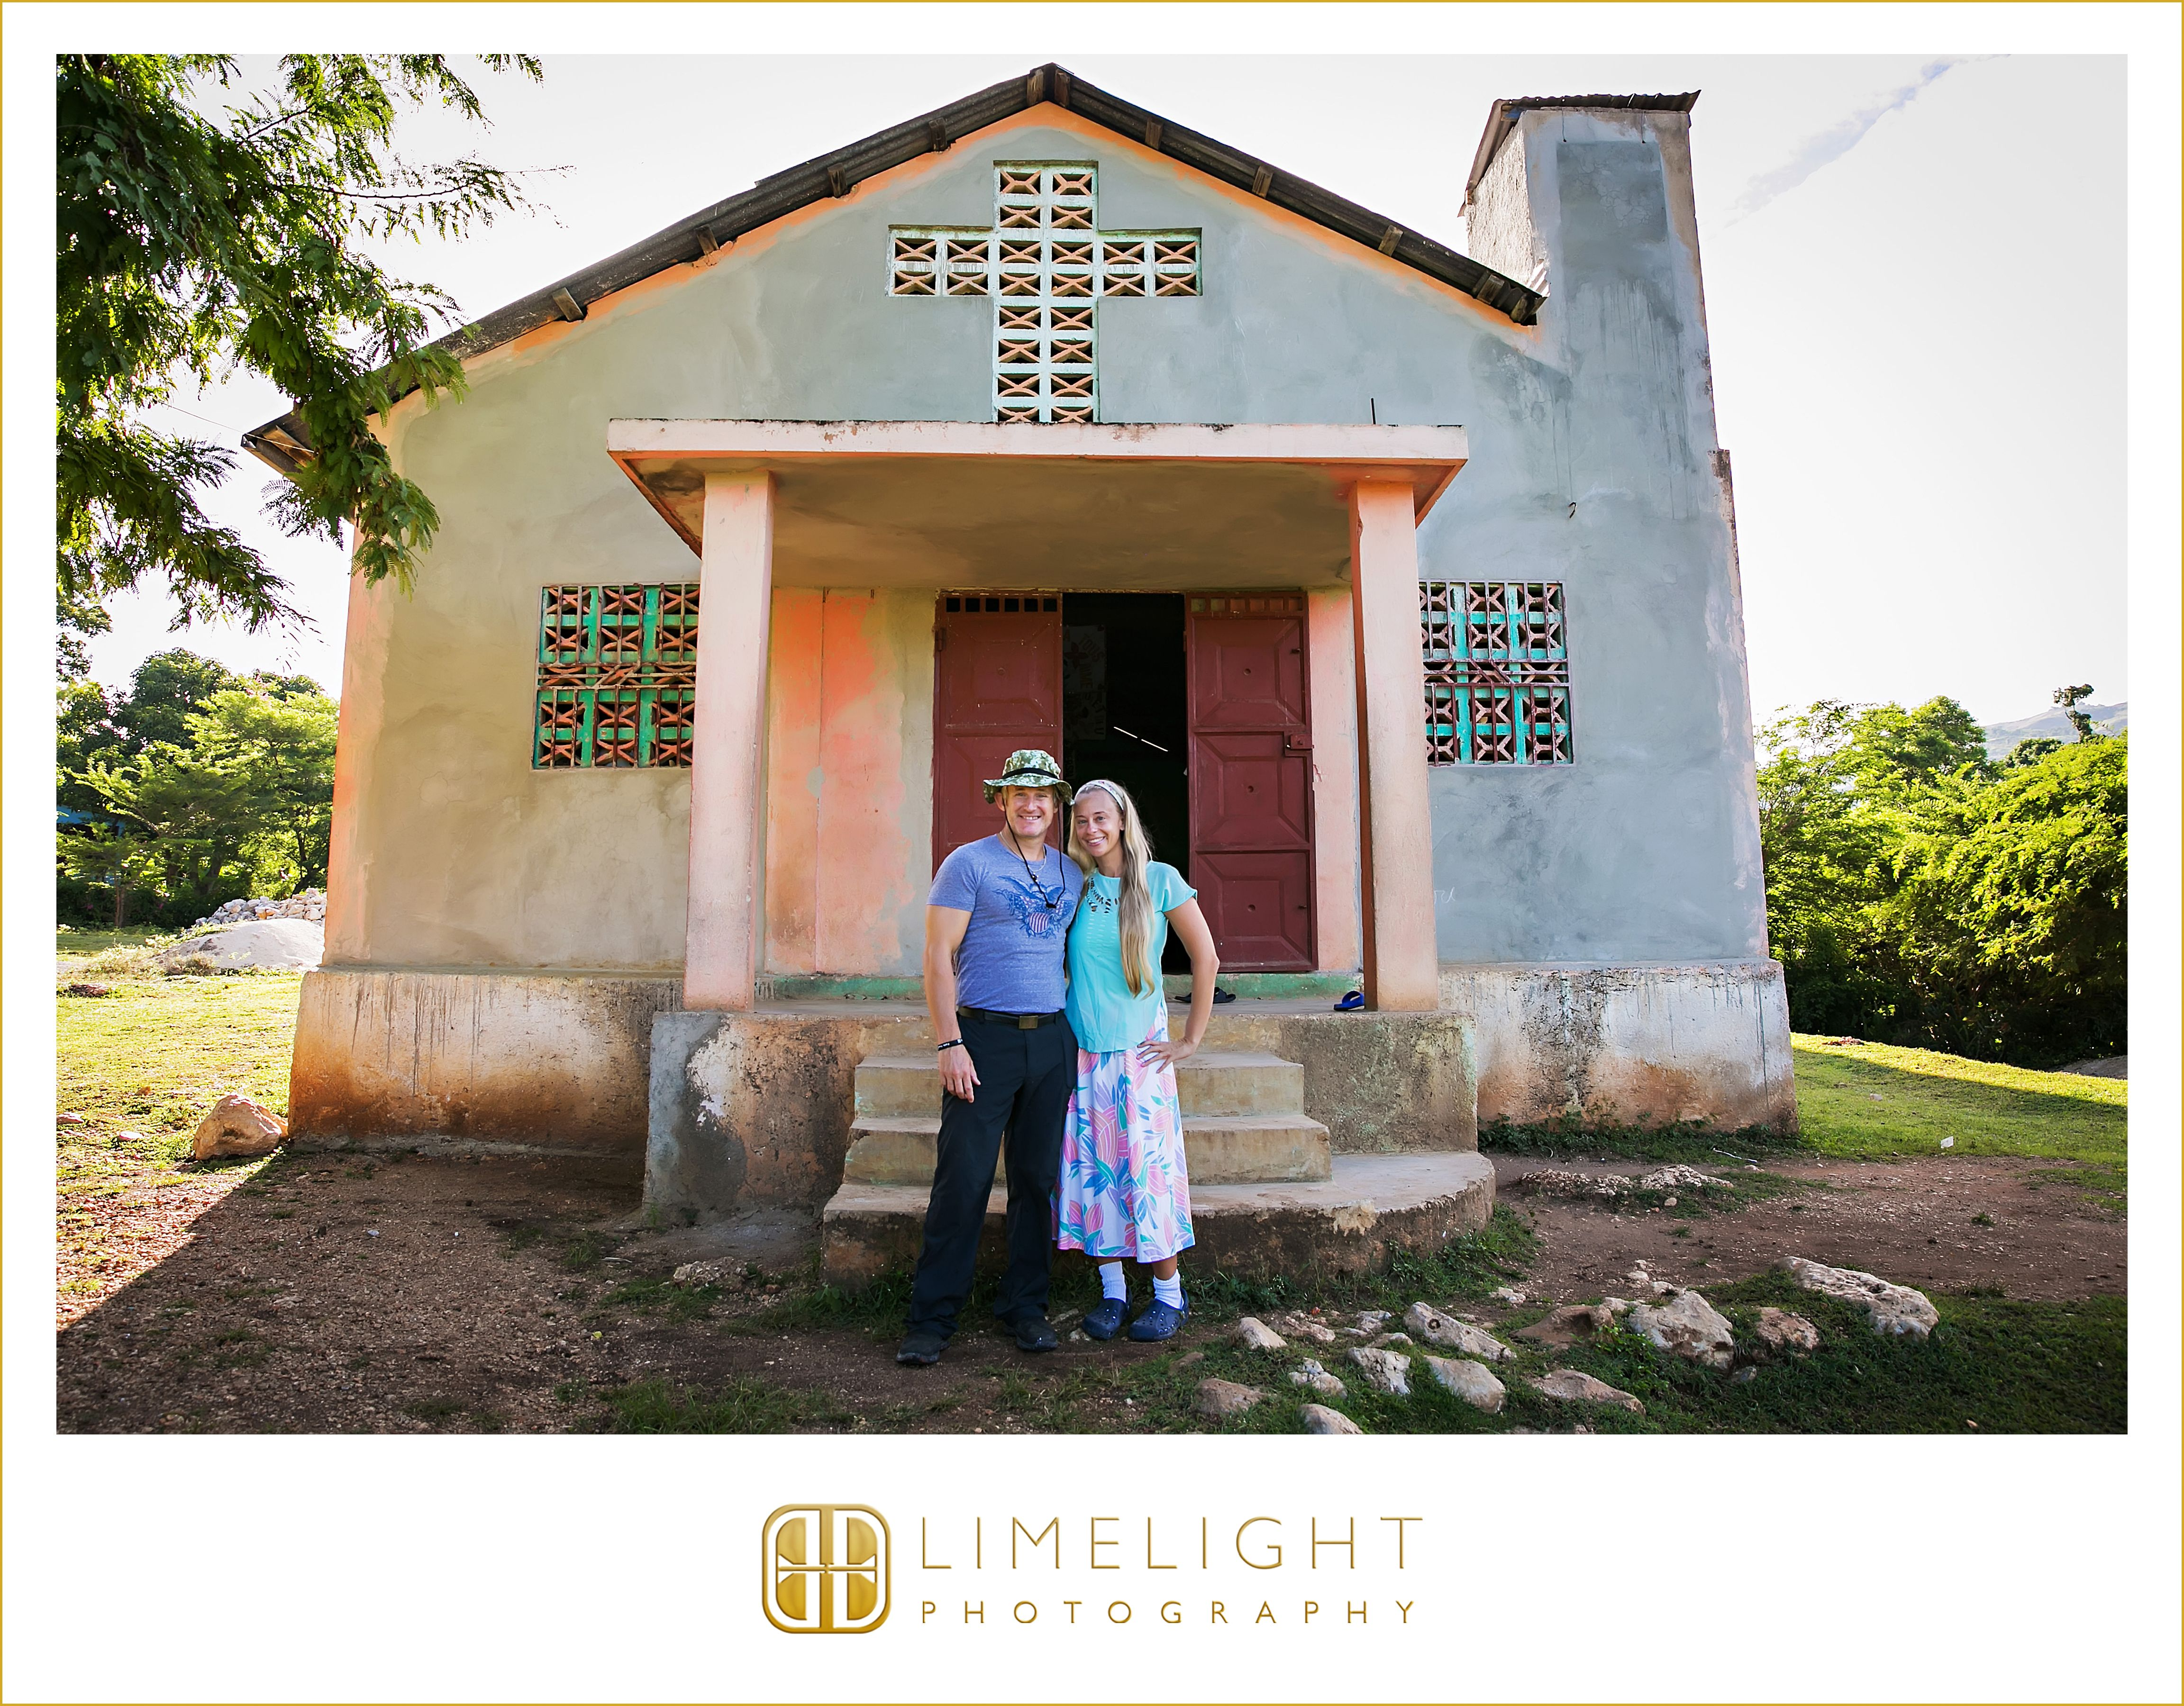 So blessed to travel together as husband and wife to work in Z'Orange, Ouest, Haiti. We do this work for our Lord and Savior Jesus Christ. www.stepintothelimelight.com www.truthem.org